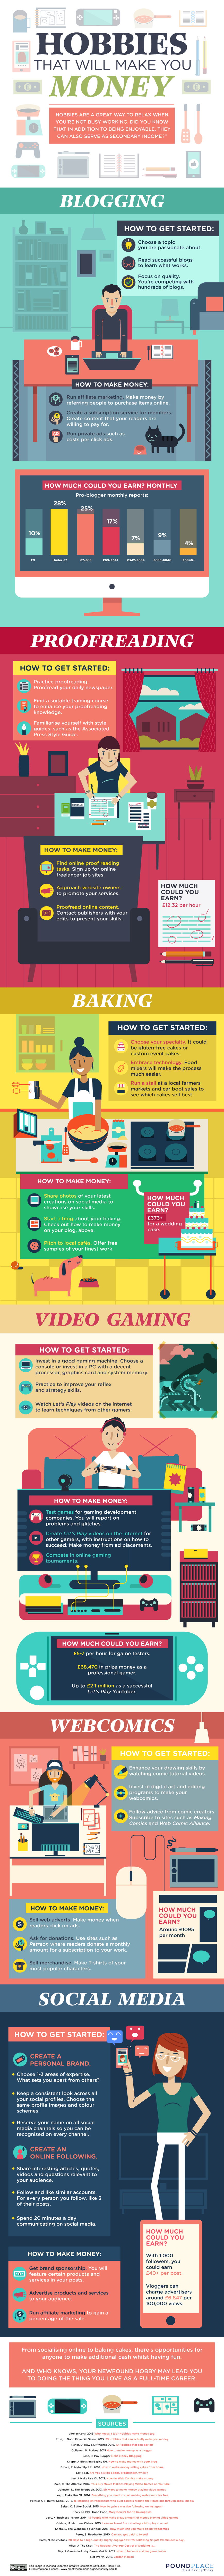 Hobbies that will make you money - Infographic